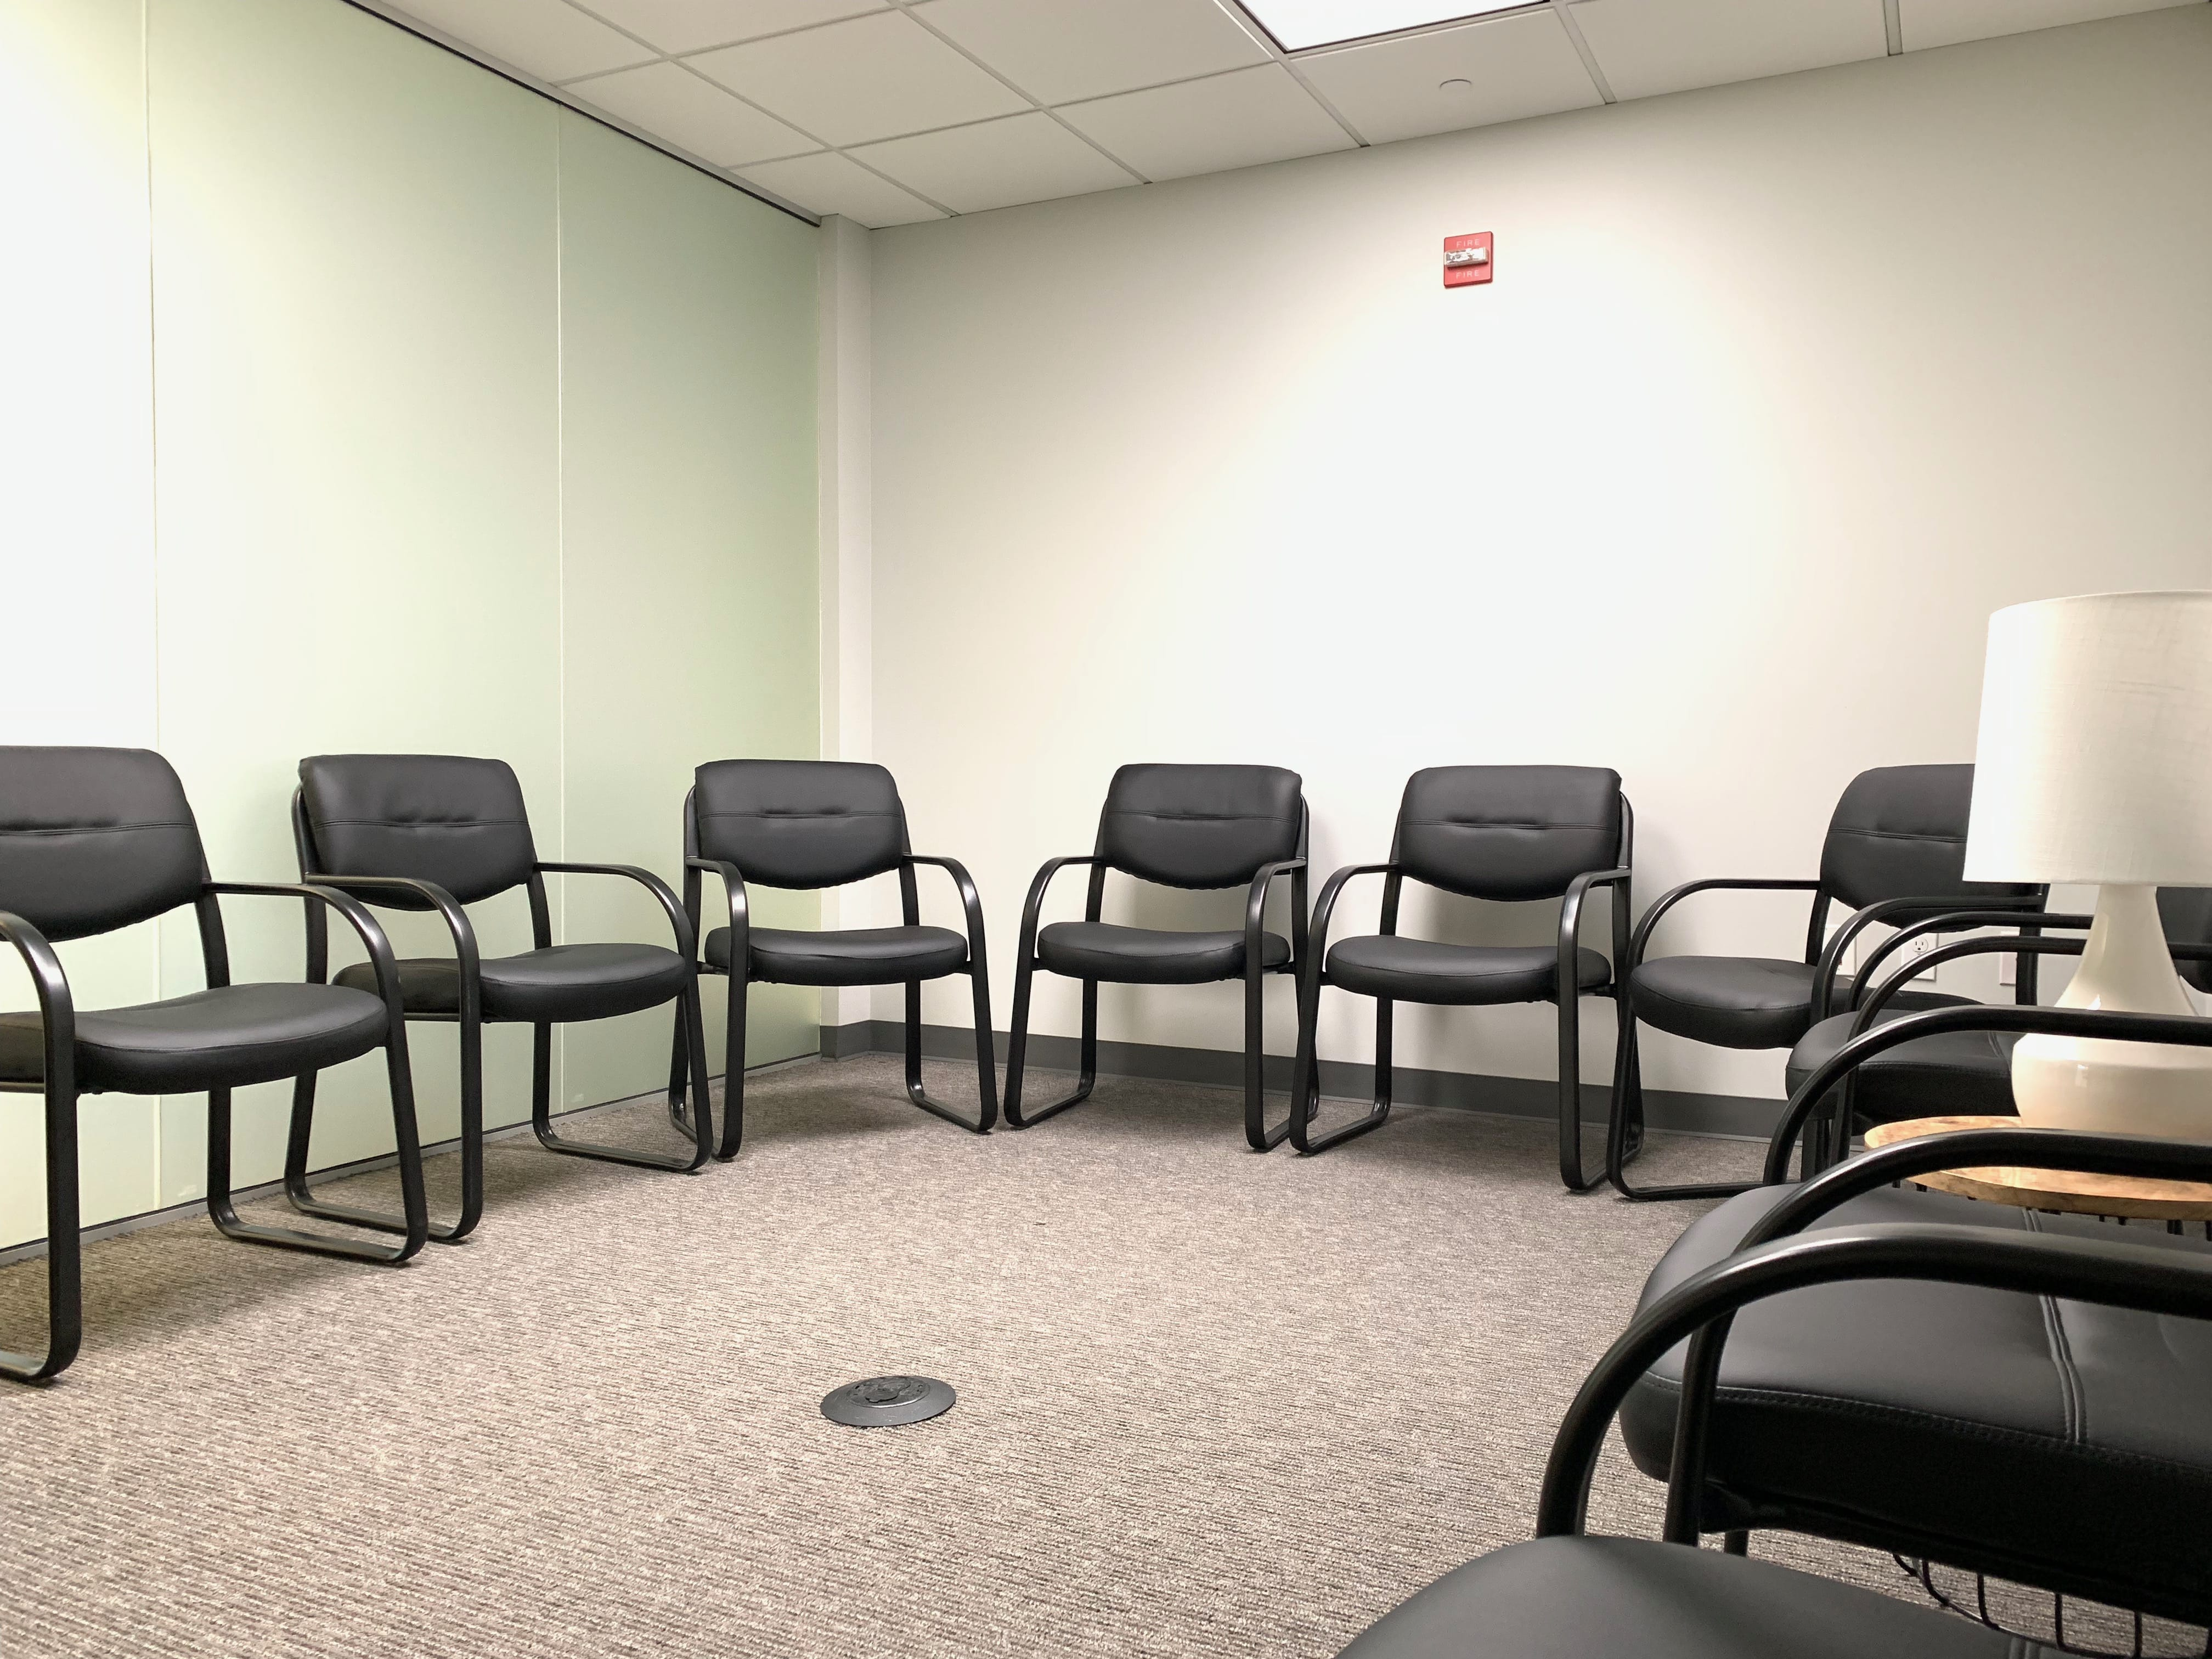 Group Counseling Services Denver